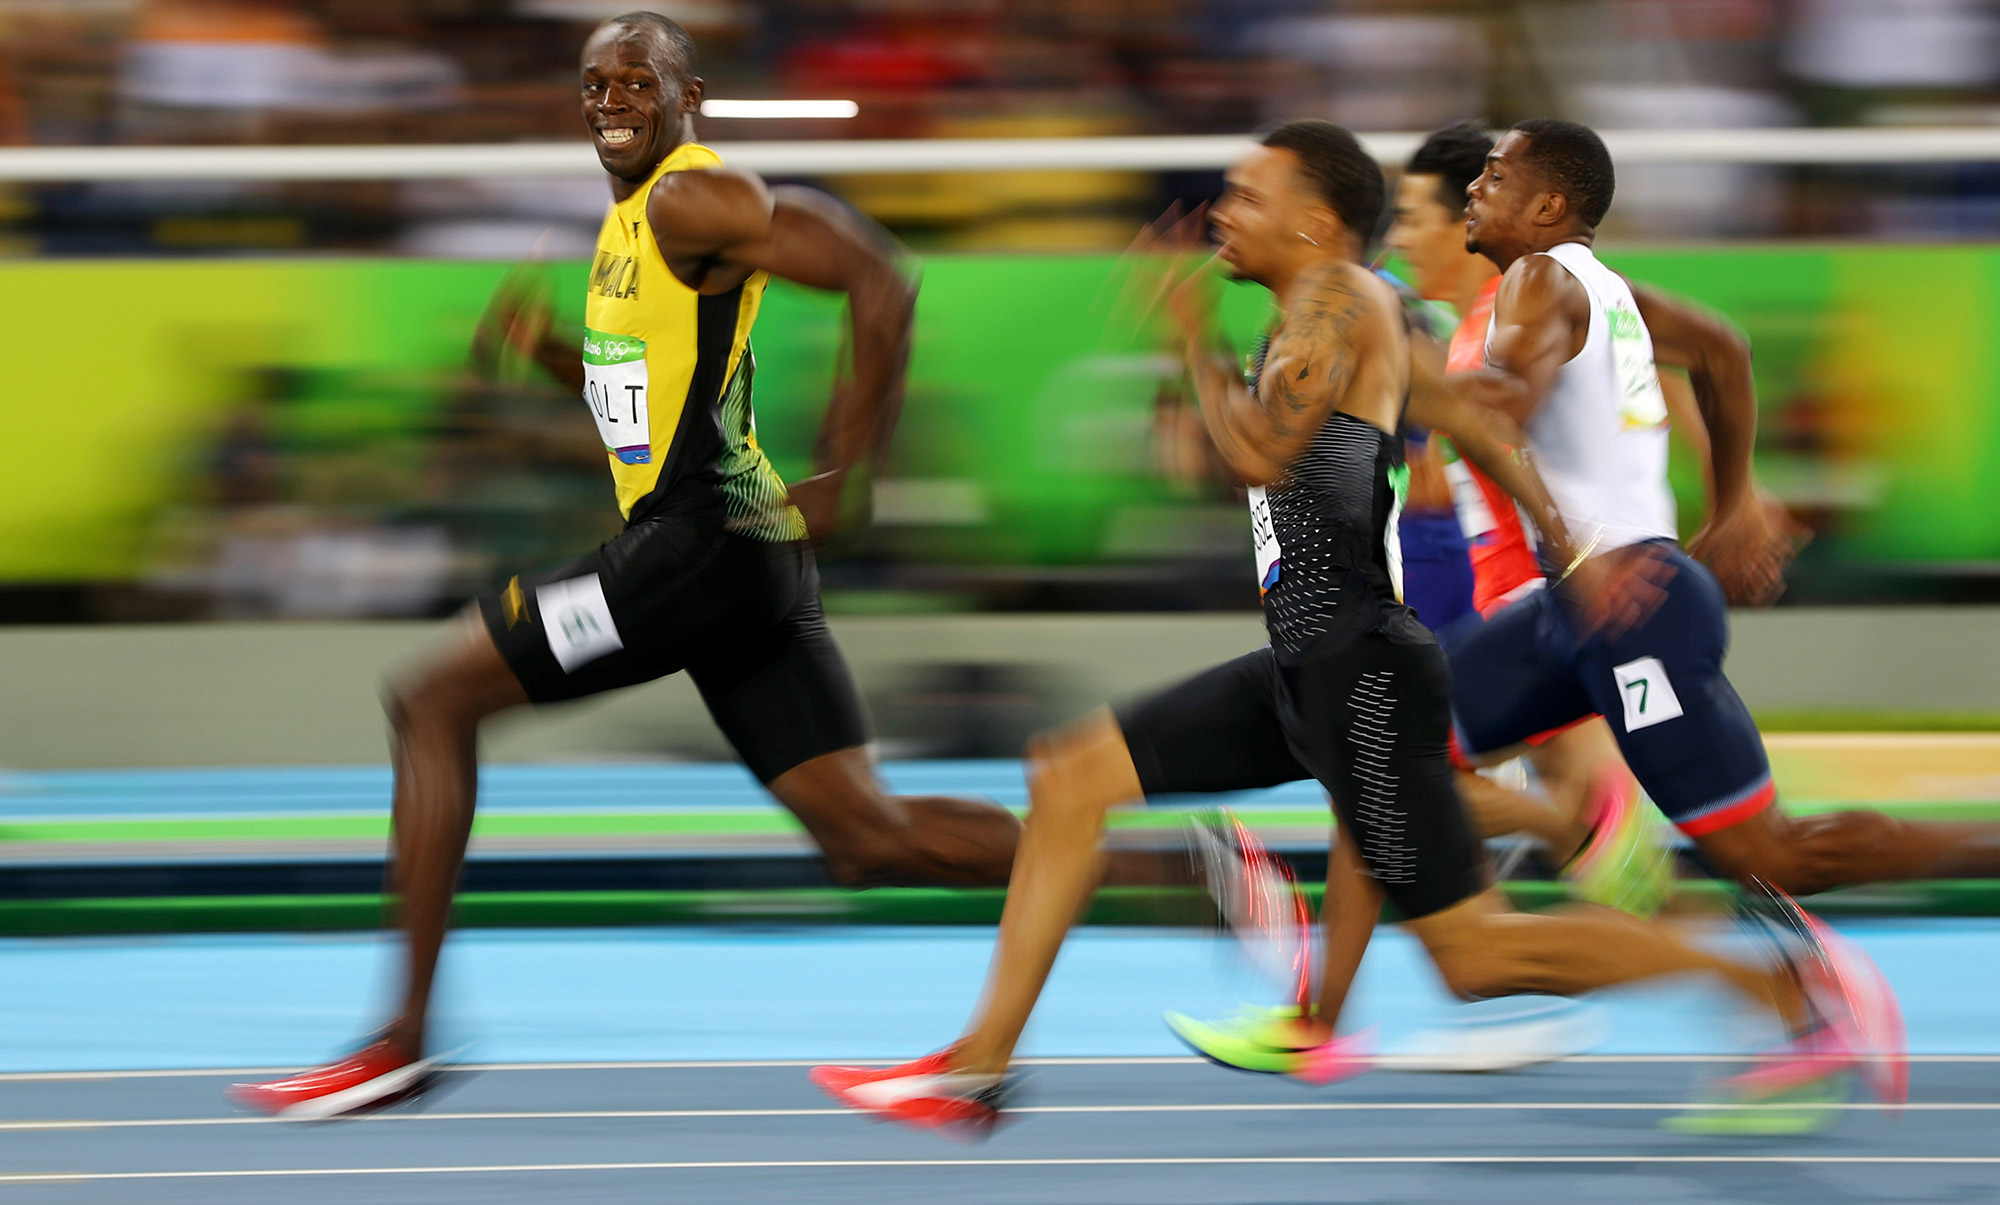 Jamaican sprinter Usain Bolt looks back at his Olympic competitors during a 100-meter semifinal in 2016.